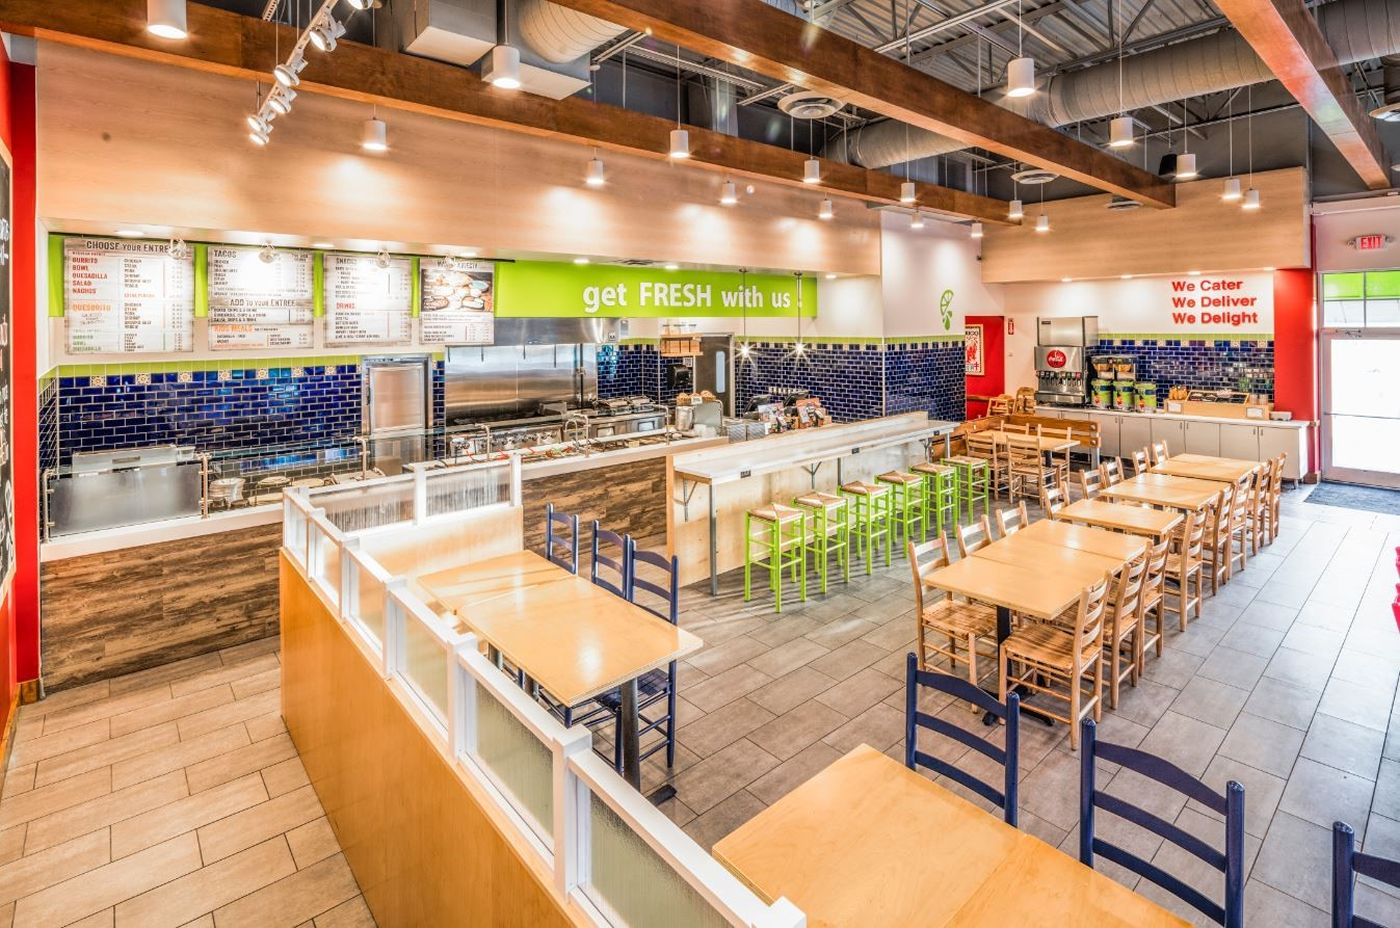 Salsarita's Fresh Mexican Grill Adds 15 New Units and Continues Steady Profitable Growth